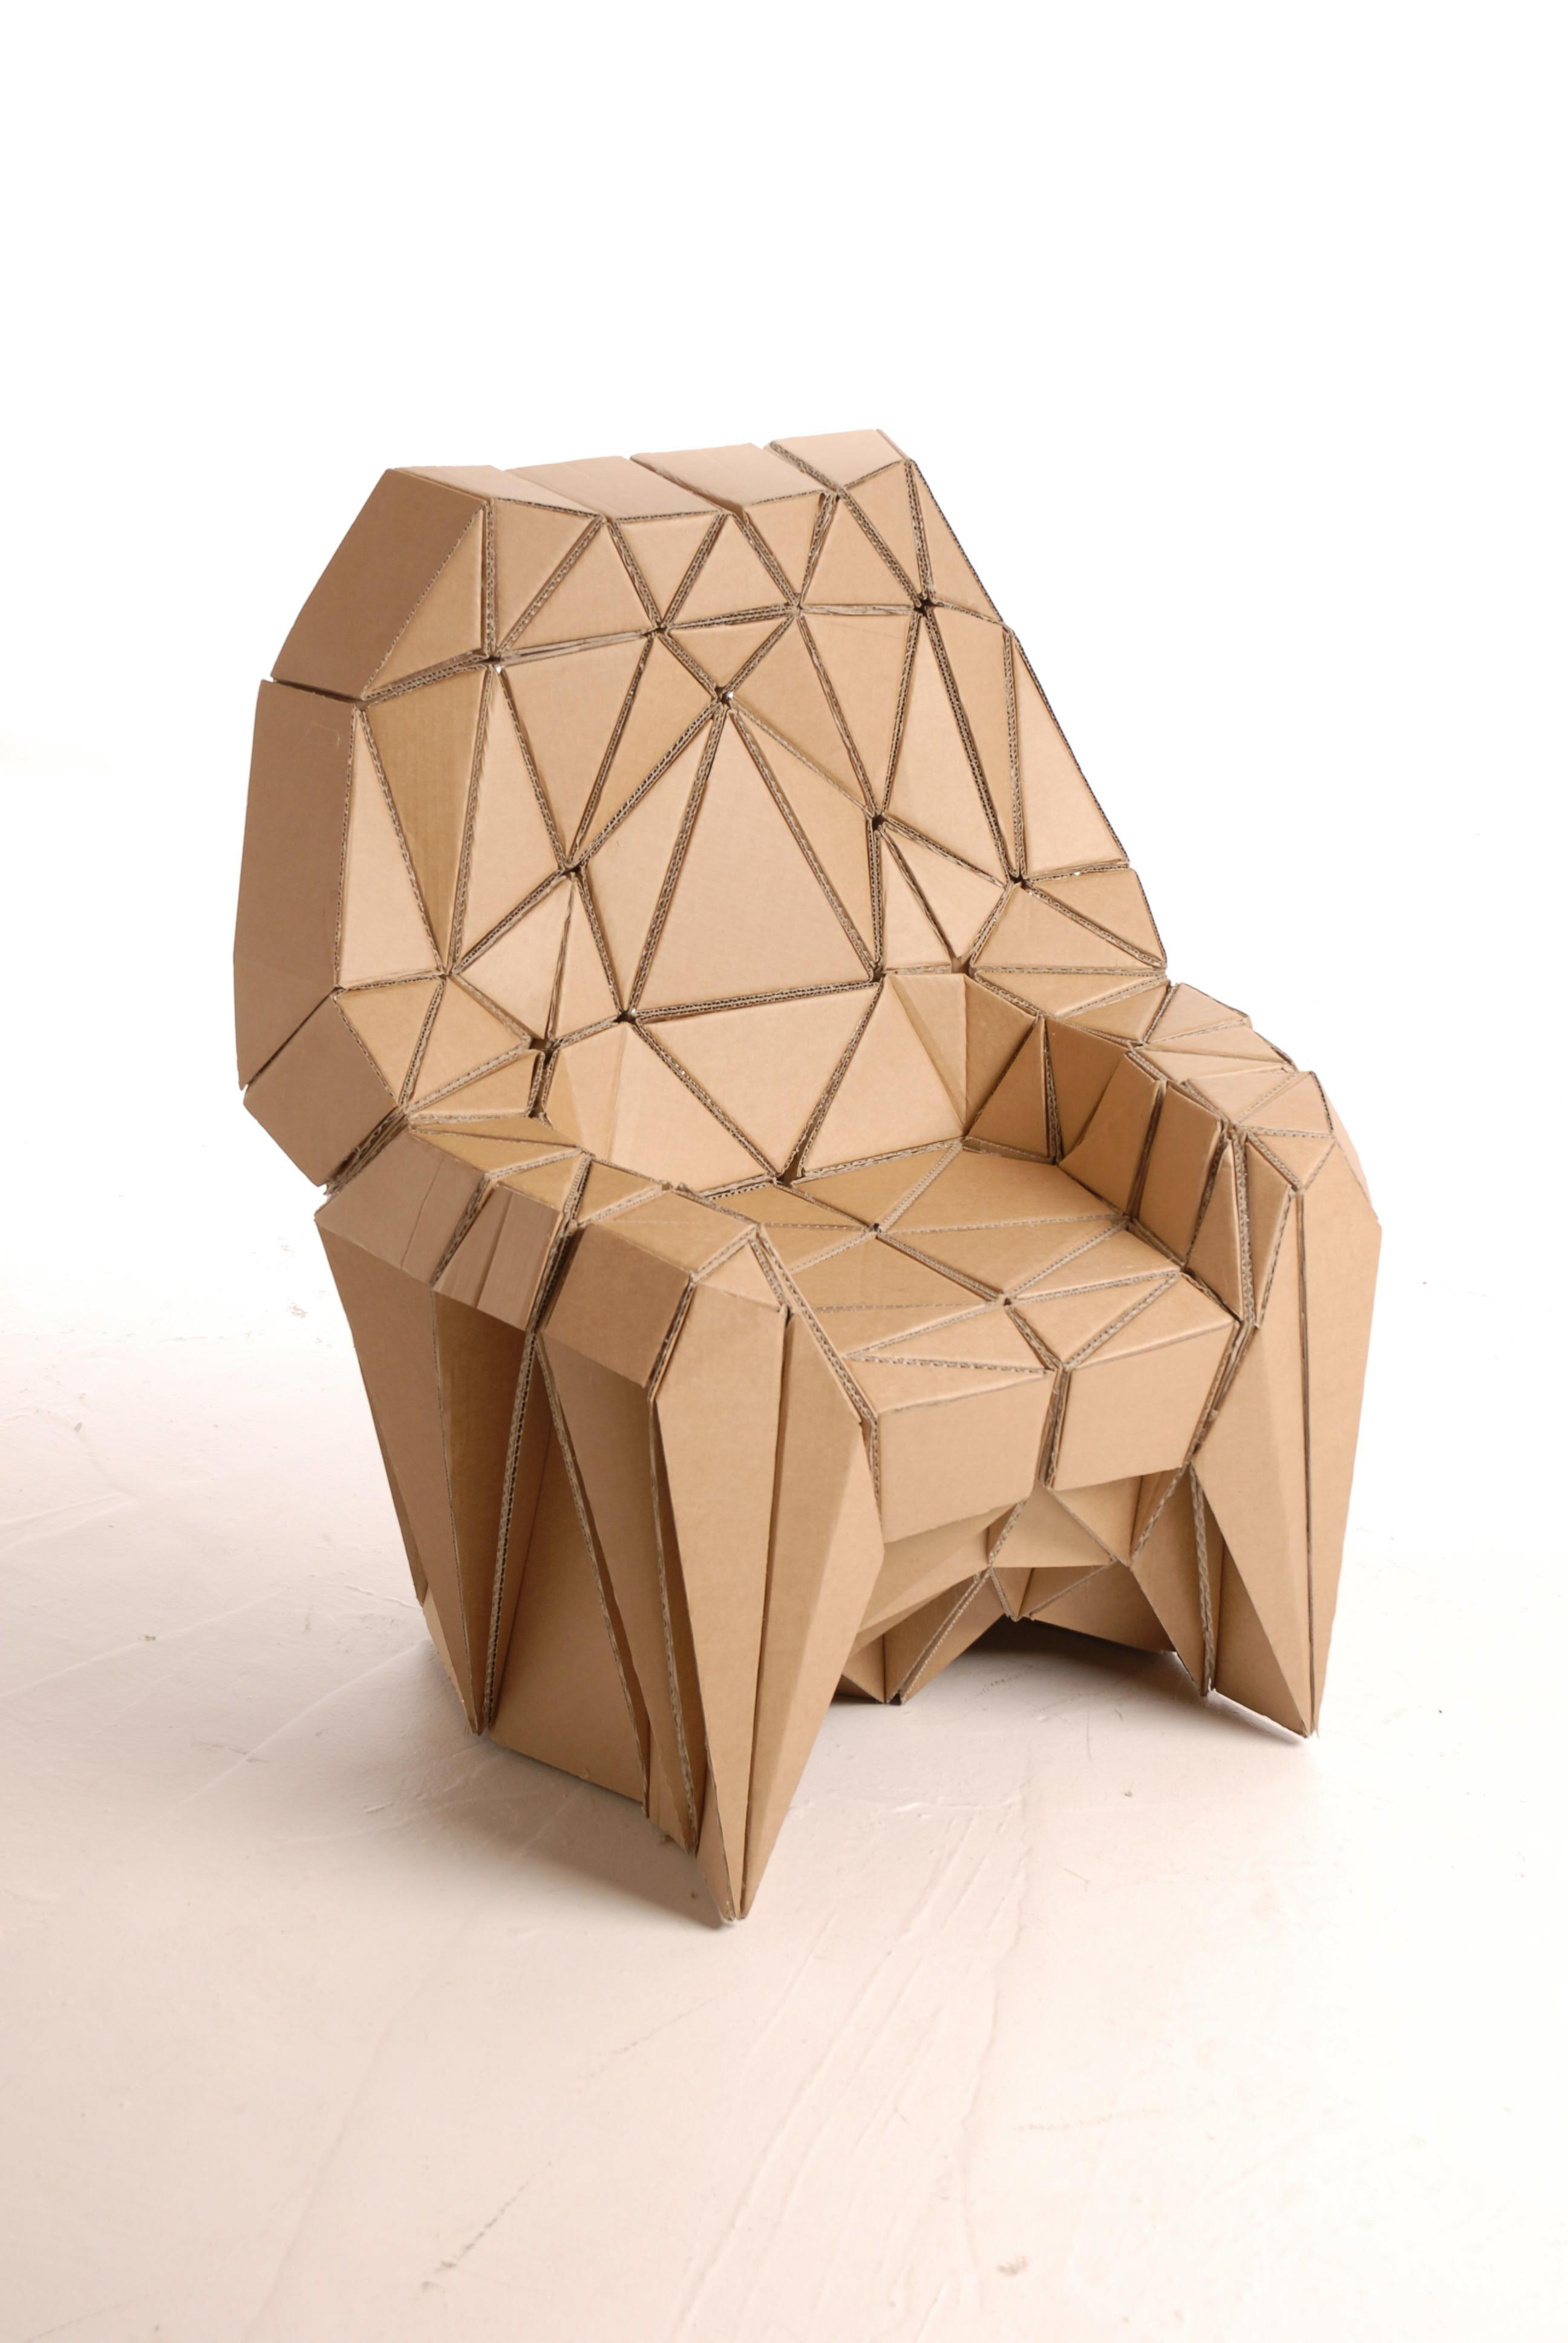 Cardboard Furniture Lazerian Studio Despoke